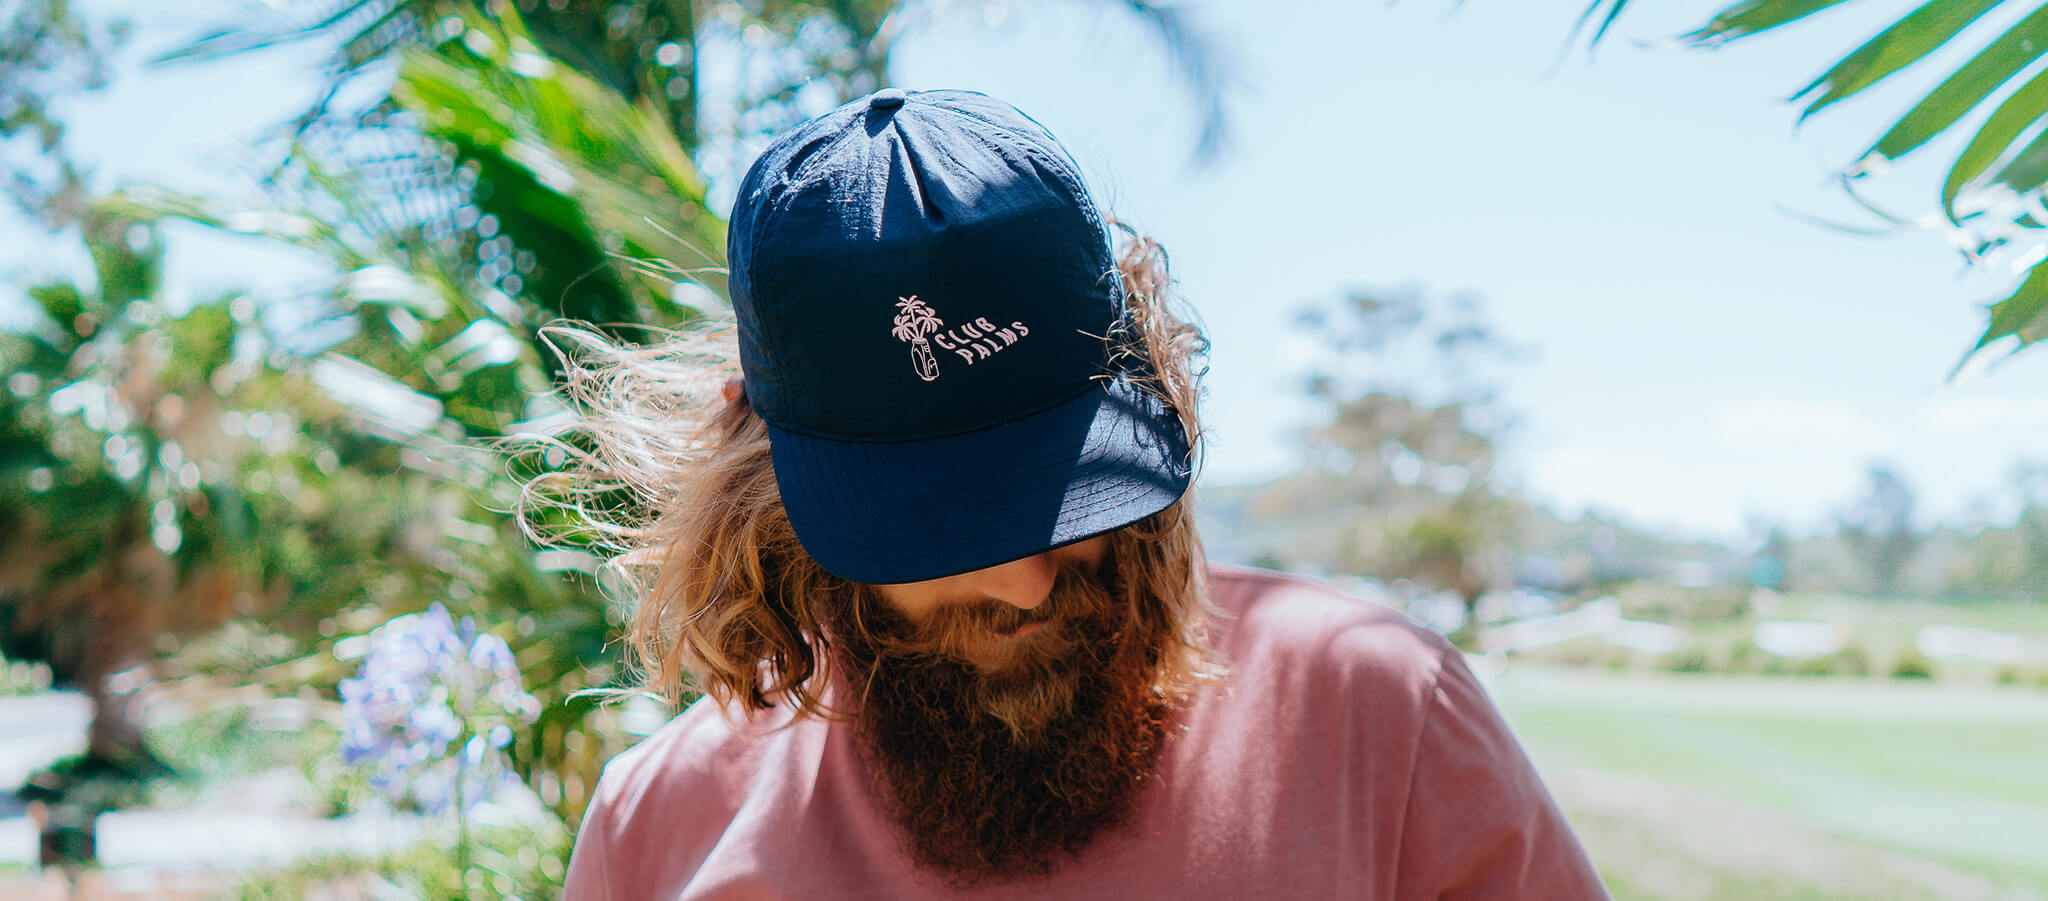 lightweight summer caps so your head doesn't melt on those stifling hot days on the course.